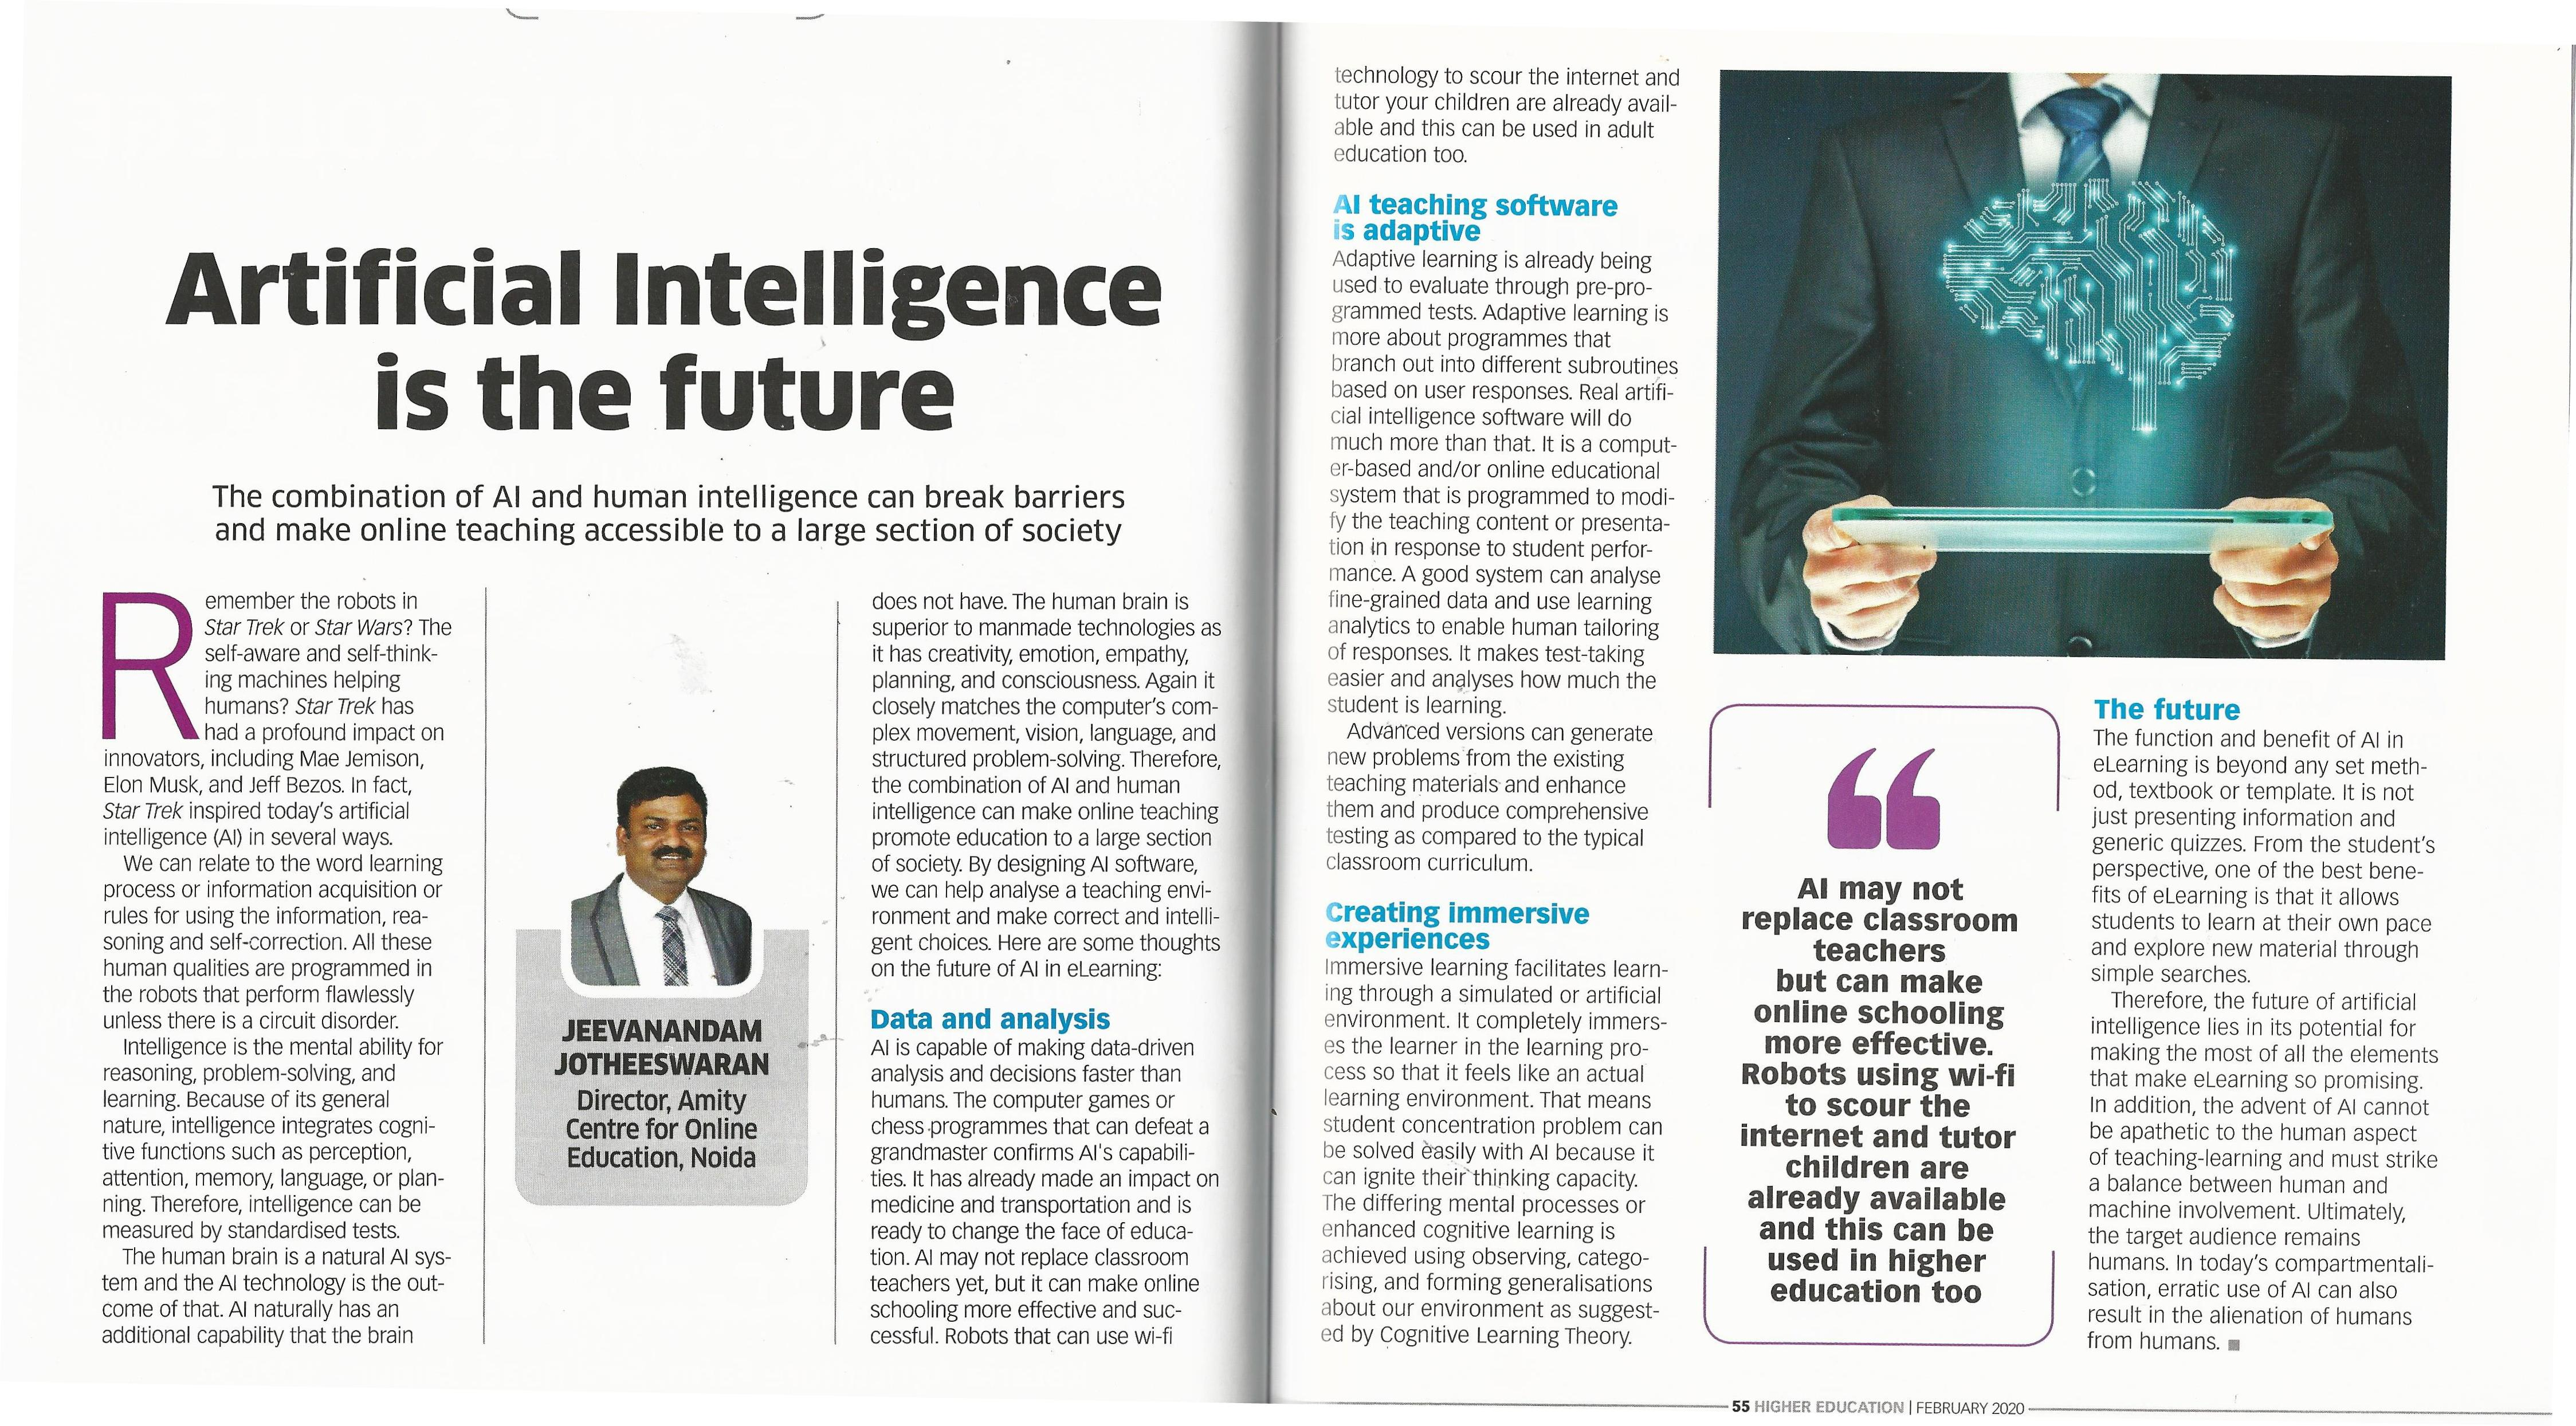 Artificial Intelligence is the future- Article by Dr. Jeevanandam Jotheeswaran - Amity Events